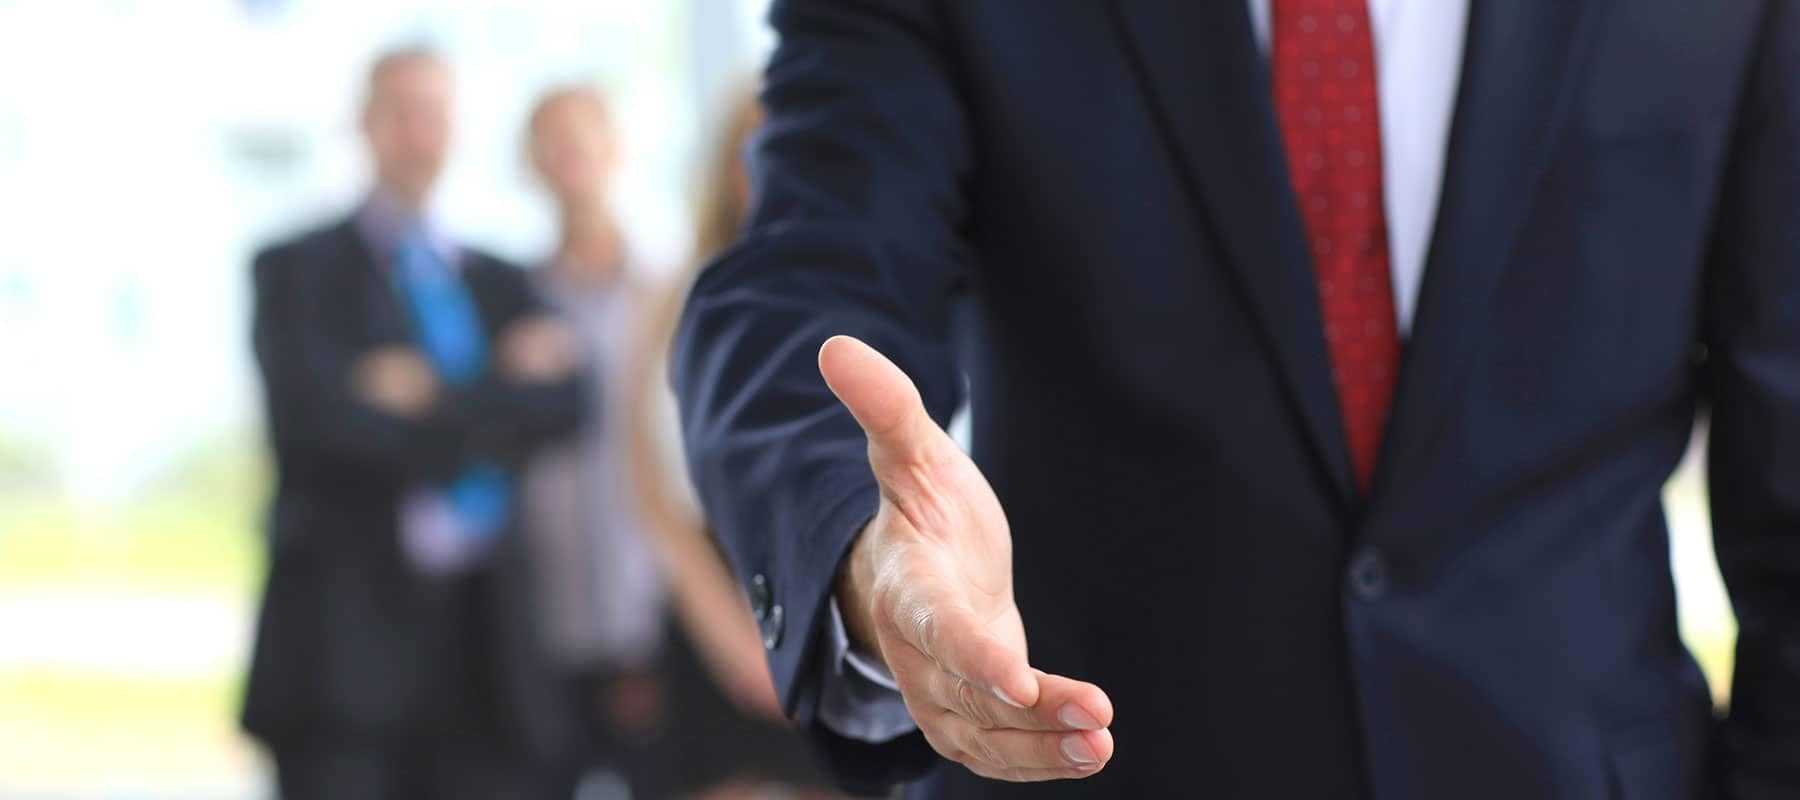 Person in suit extending hand for handshake